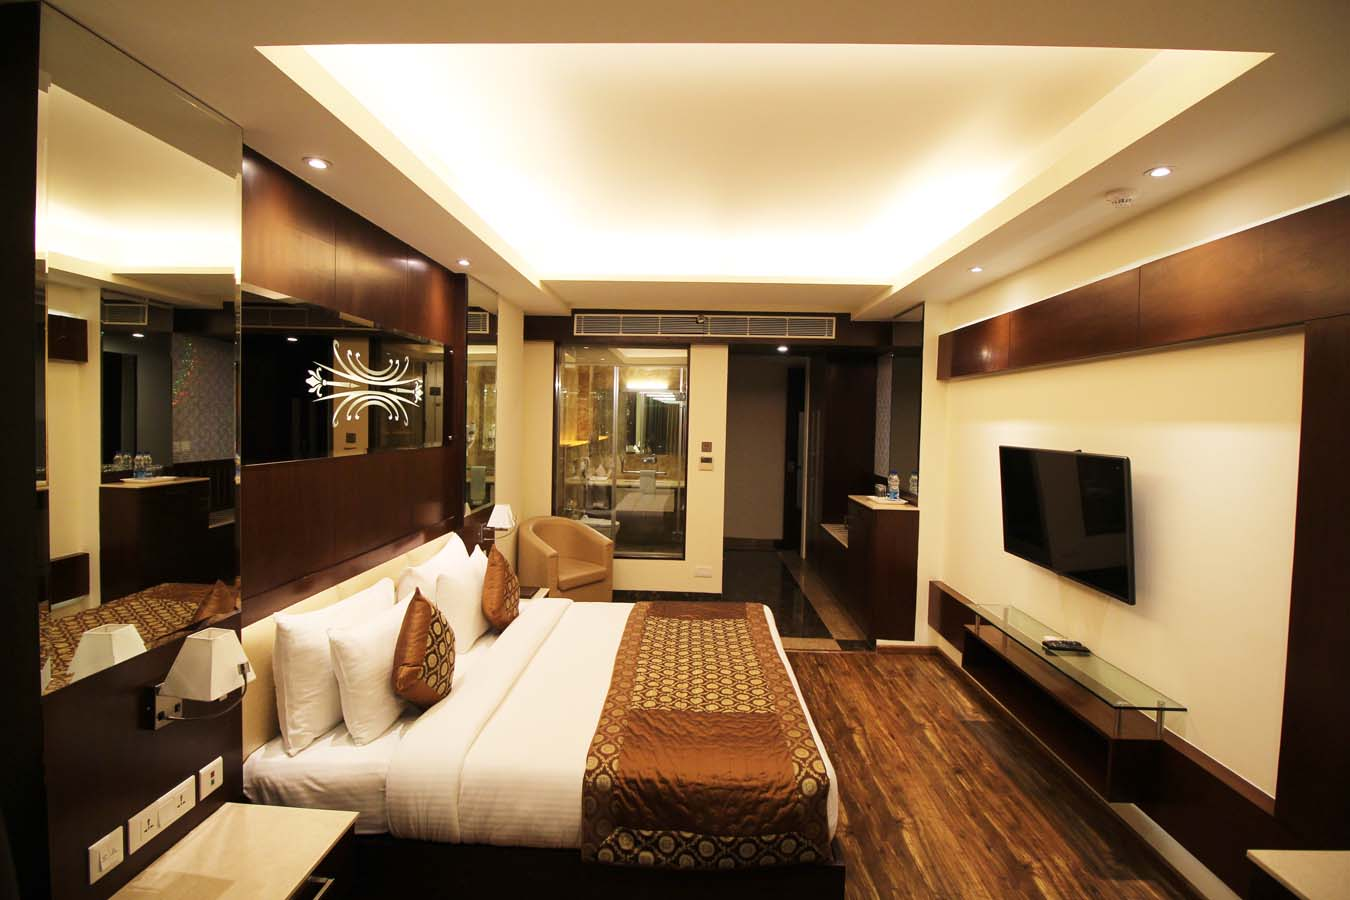 http://hotelgoldengrand.com/images/pages/170809183154.4.jpg